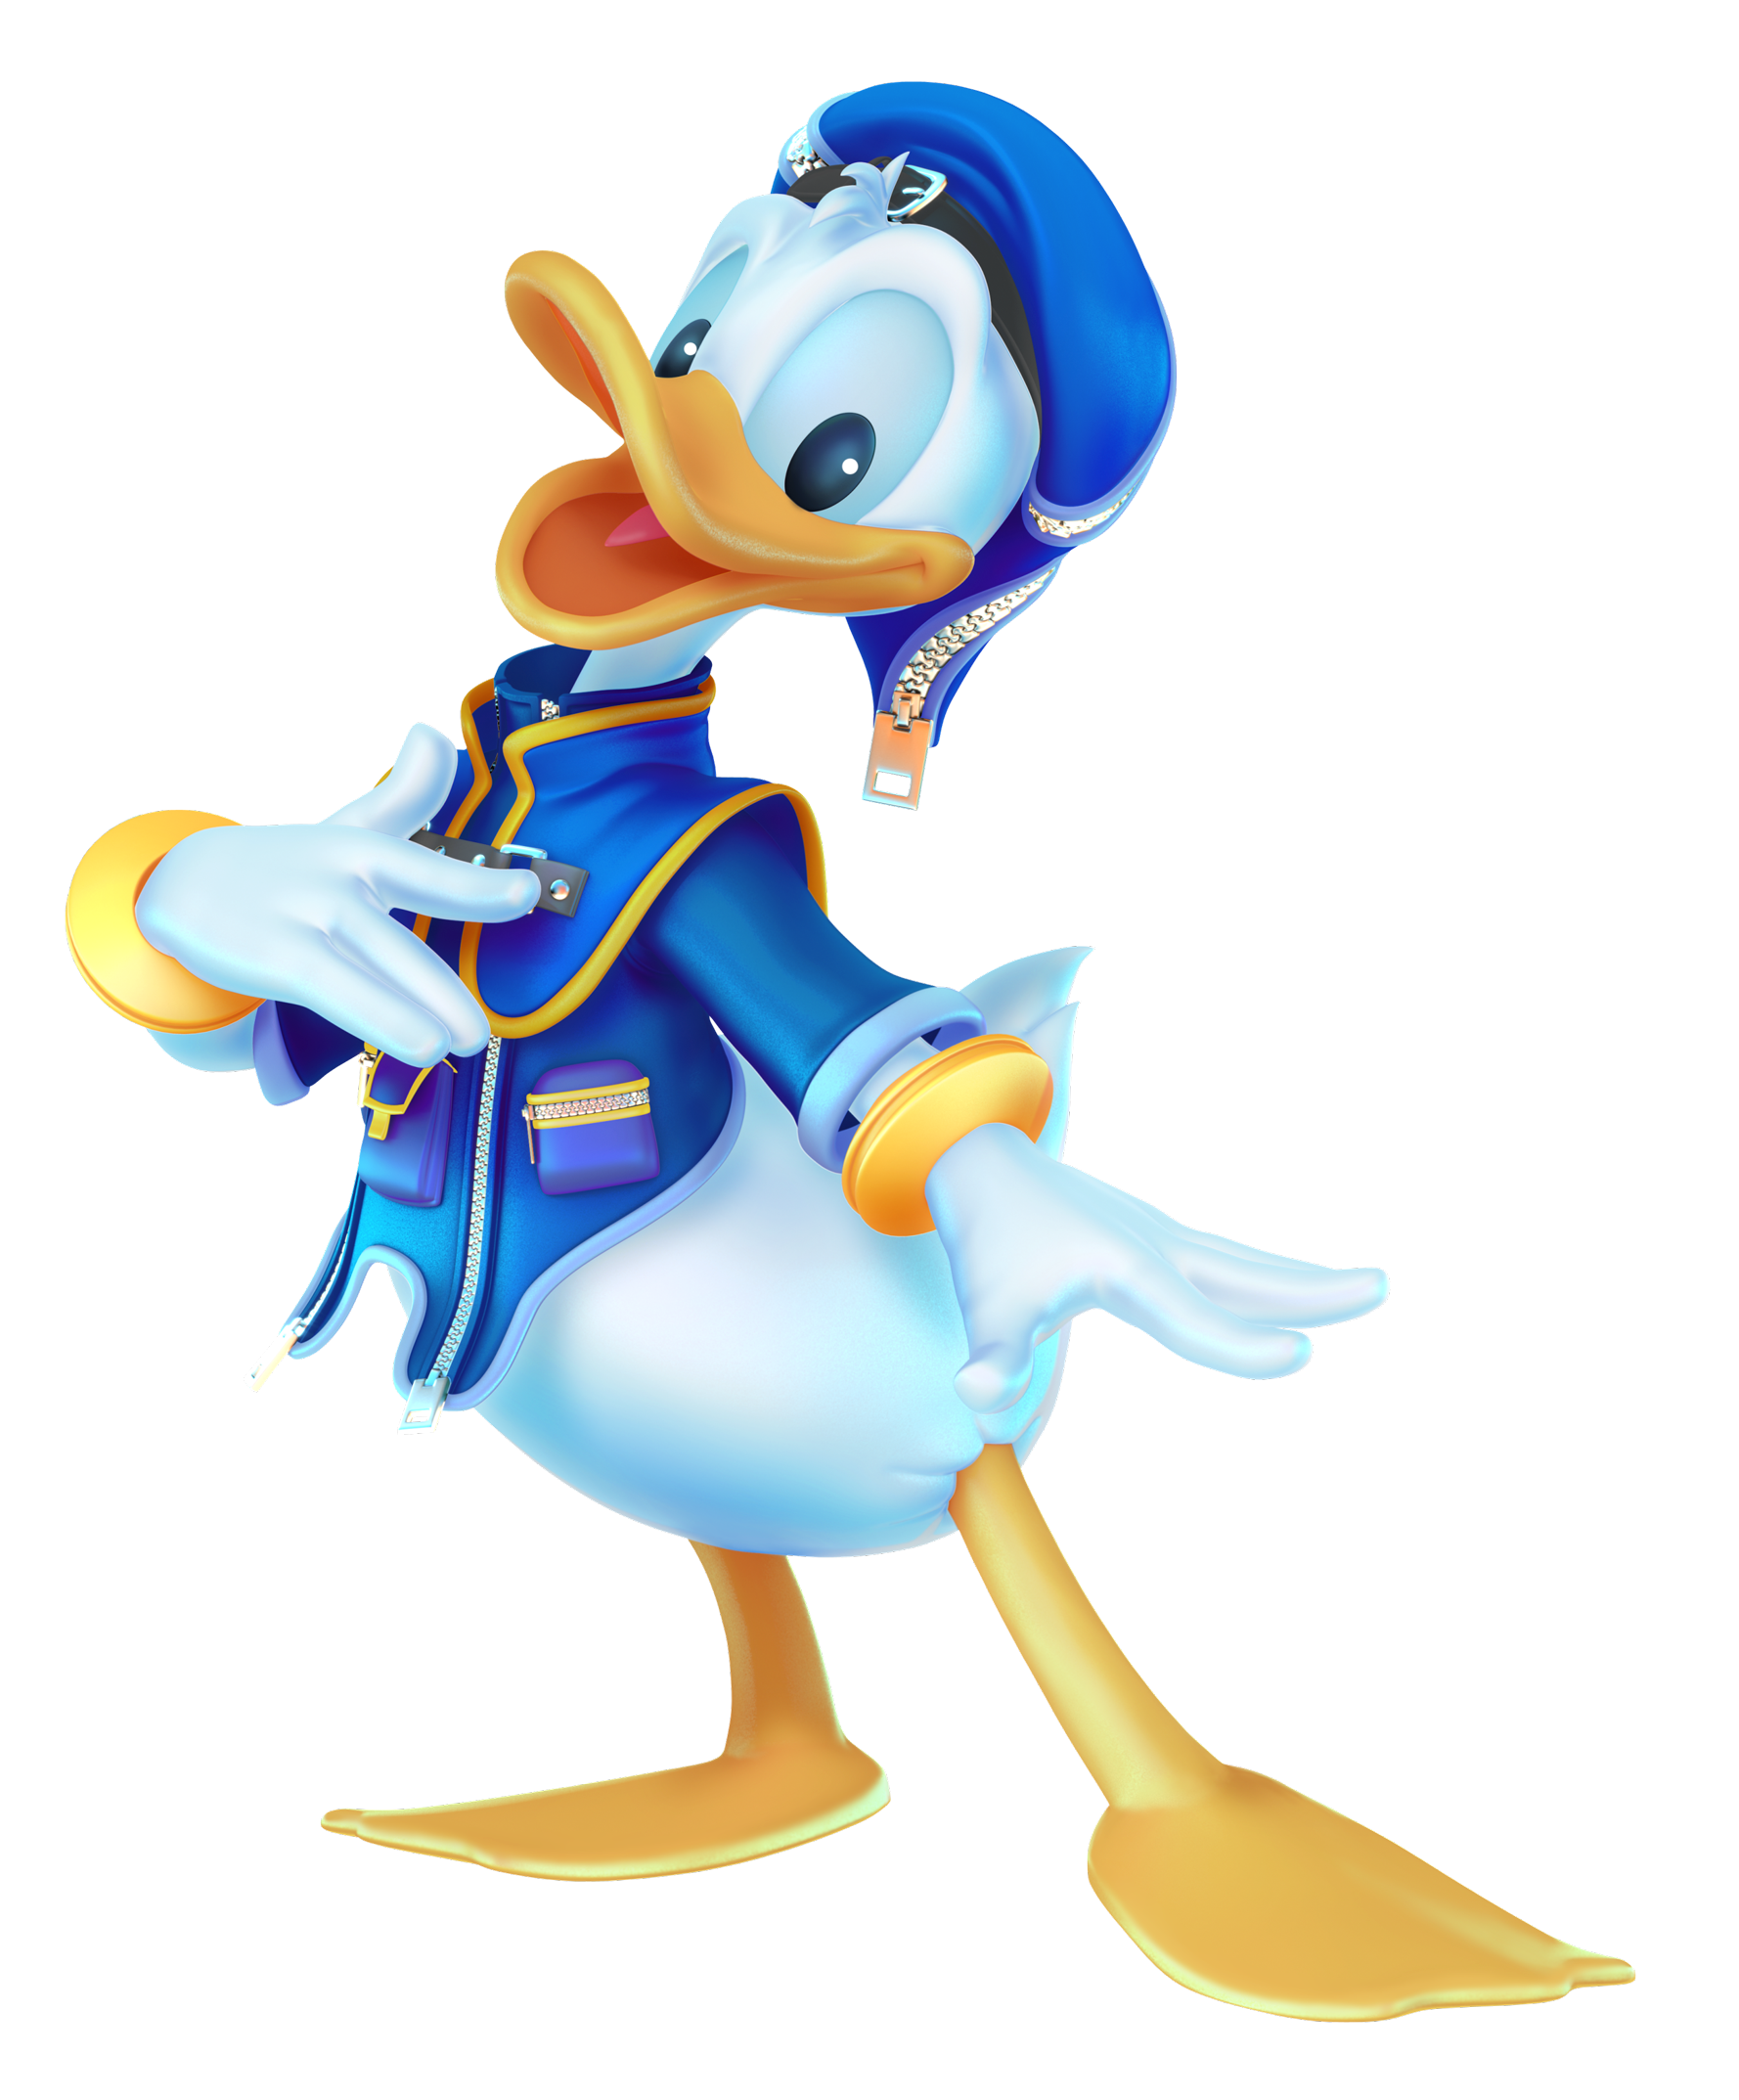 donald duck png transparent image pngpix #25596